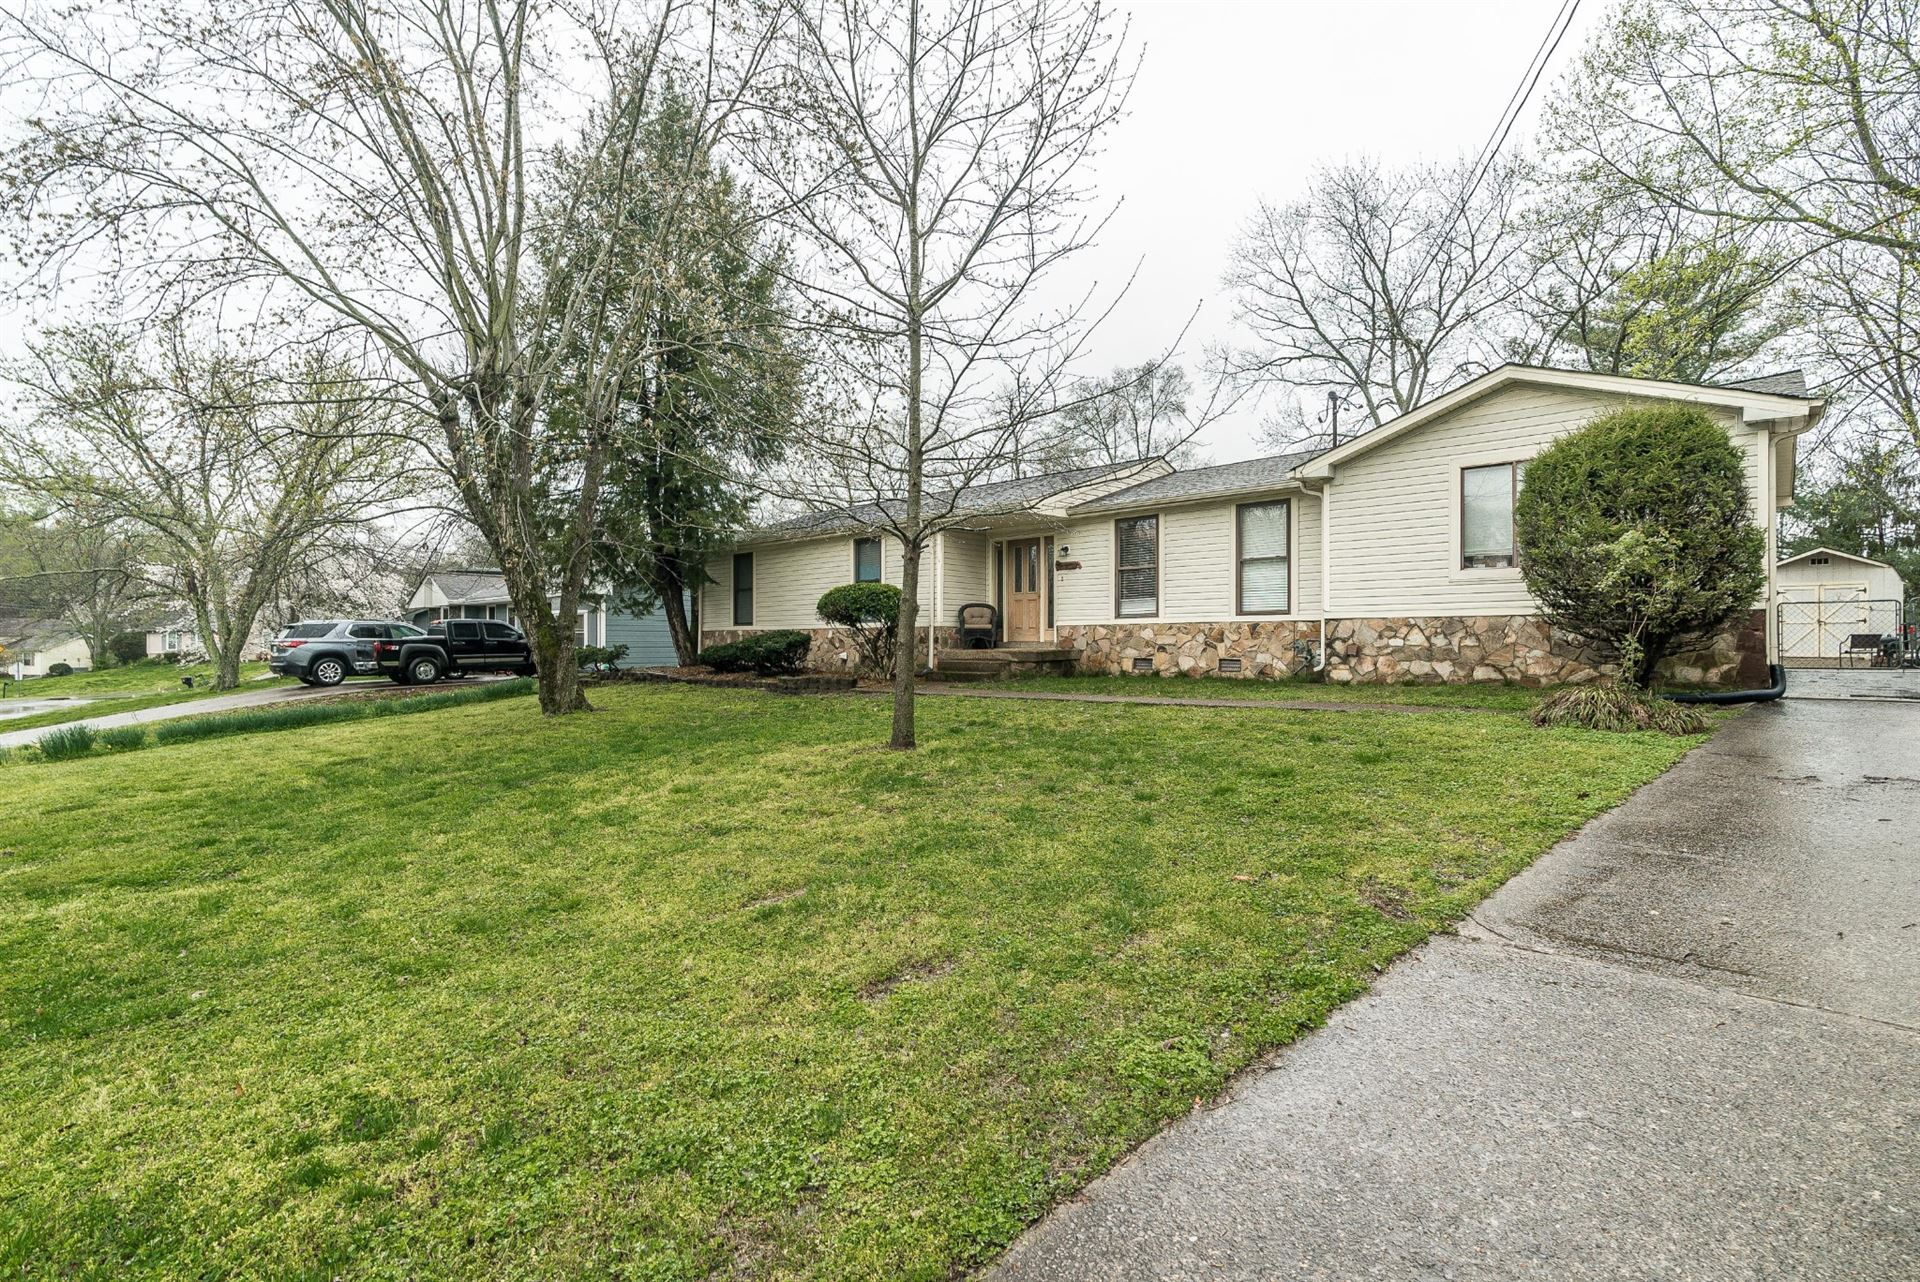 Photo of 509 Dutchmans Dr, Hermitage, TN 37076 (MLS # 2135031)